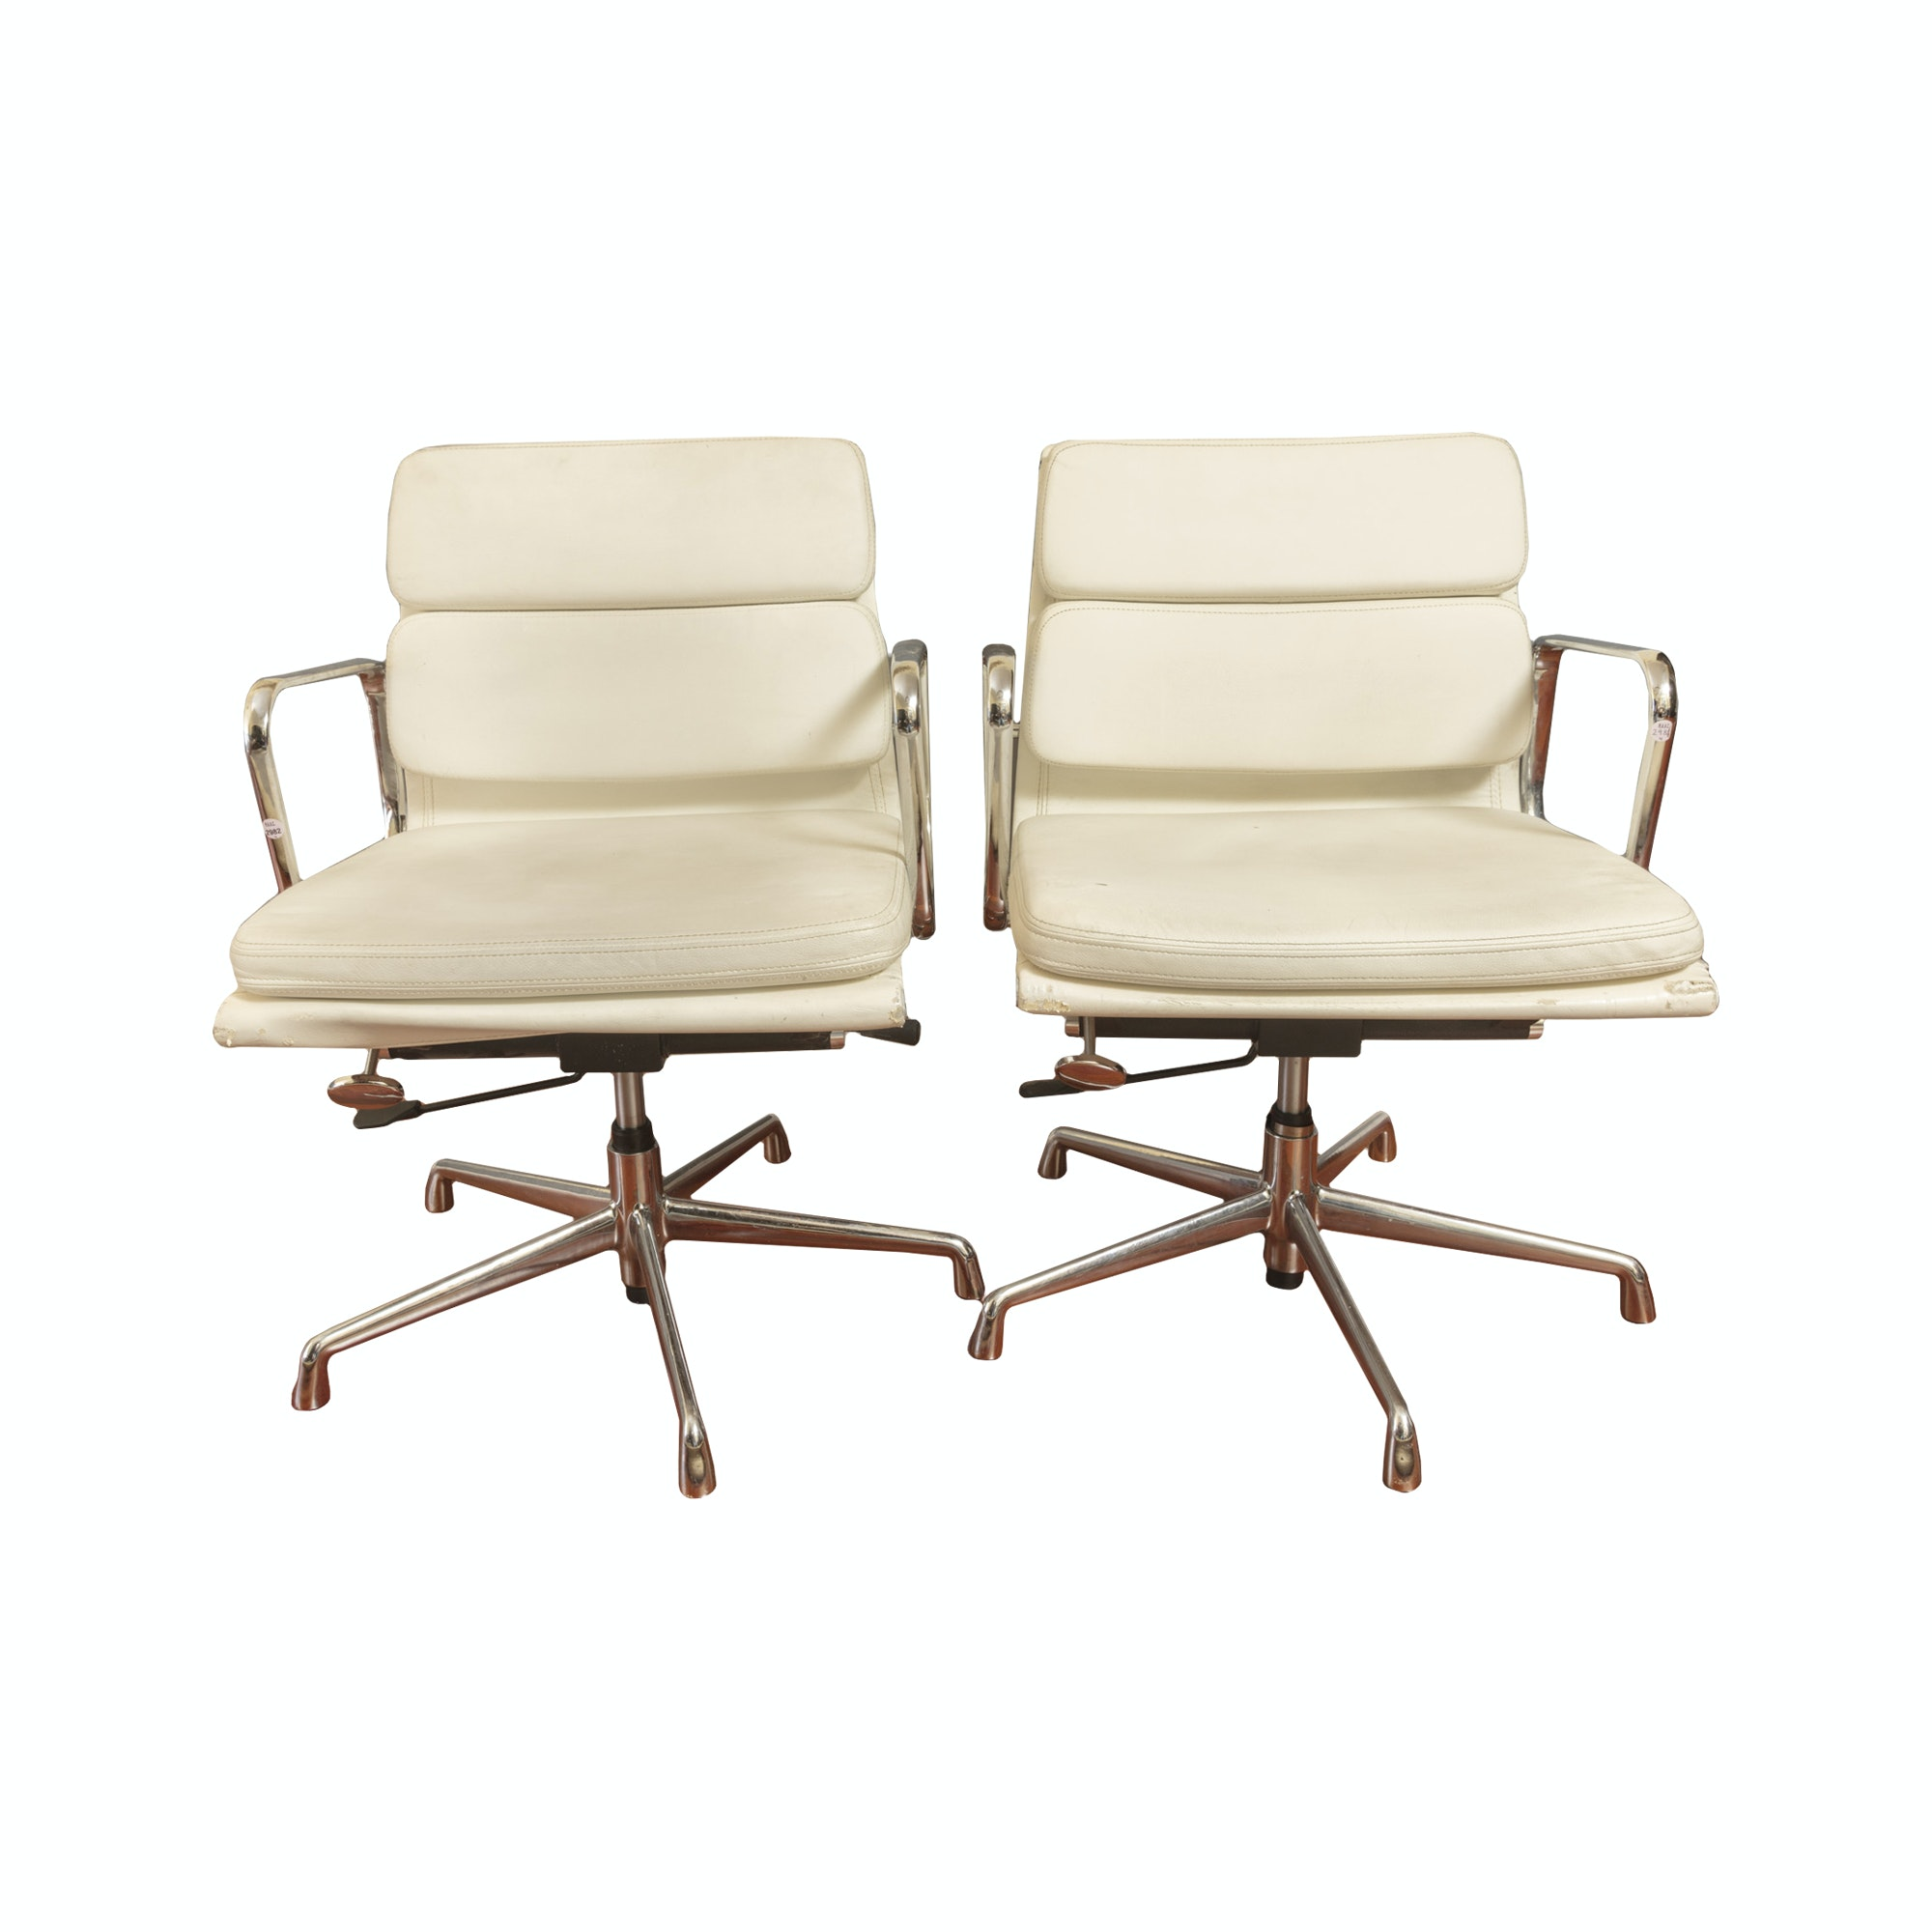 Pair of Modern Style Office Chairs